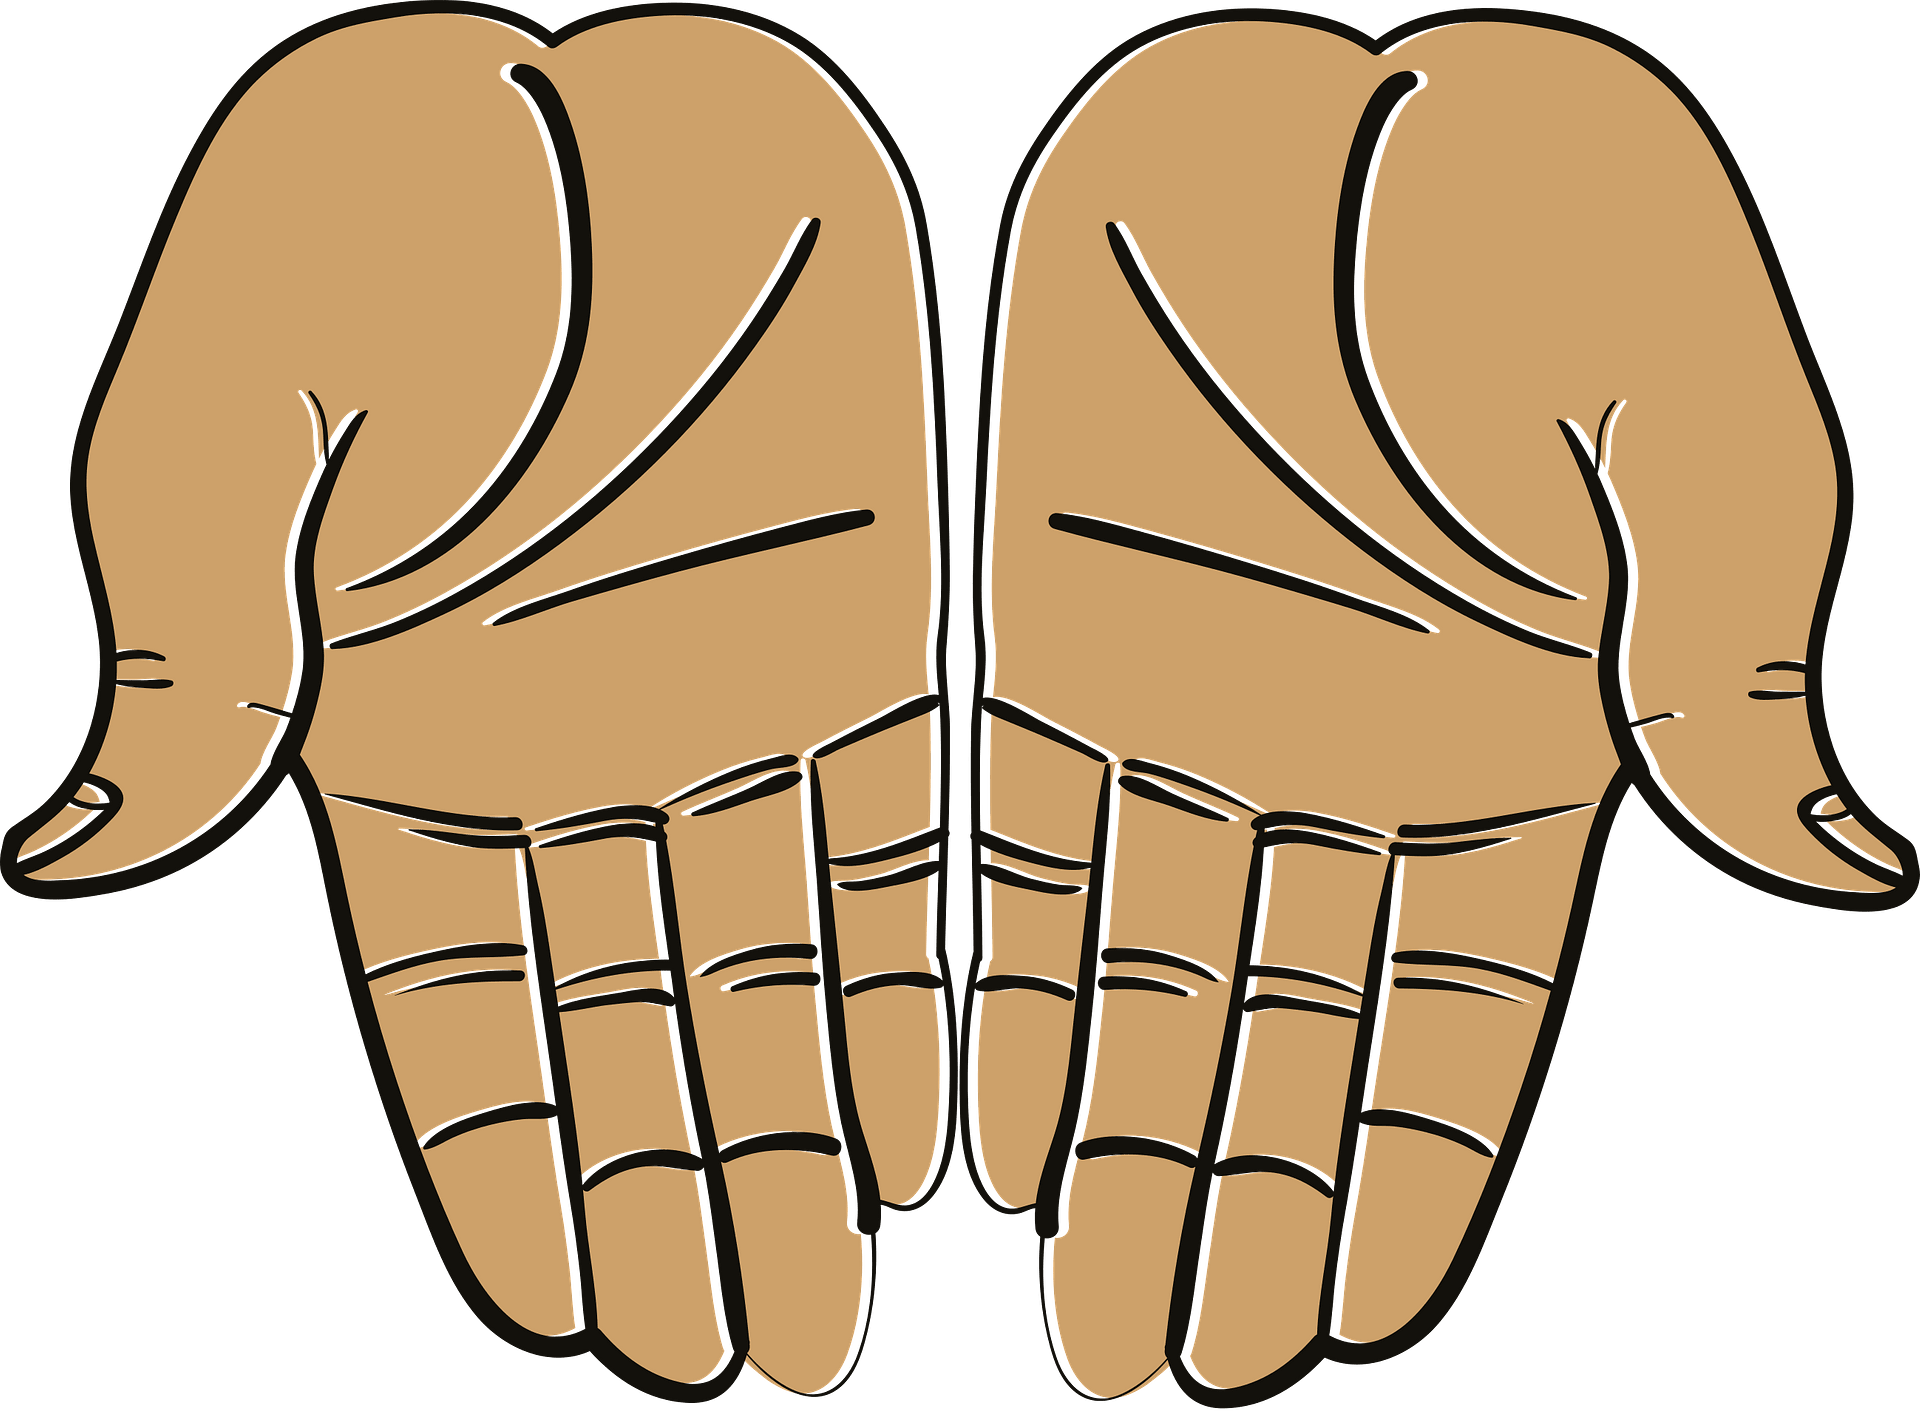 Open Hands Clipart Free Download Transparent Png Creazilla Pngkit selects 451 hd hand clipart png images for free download. open hands clipart free download